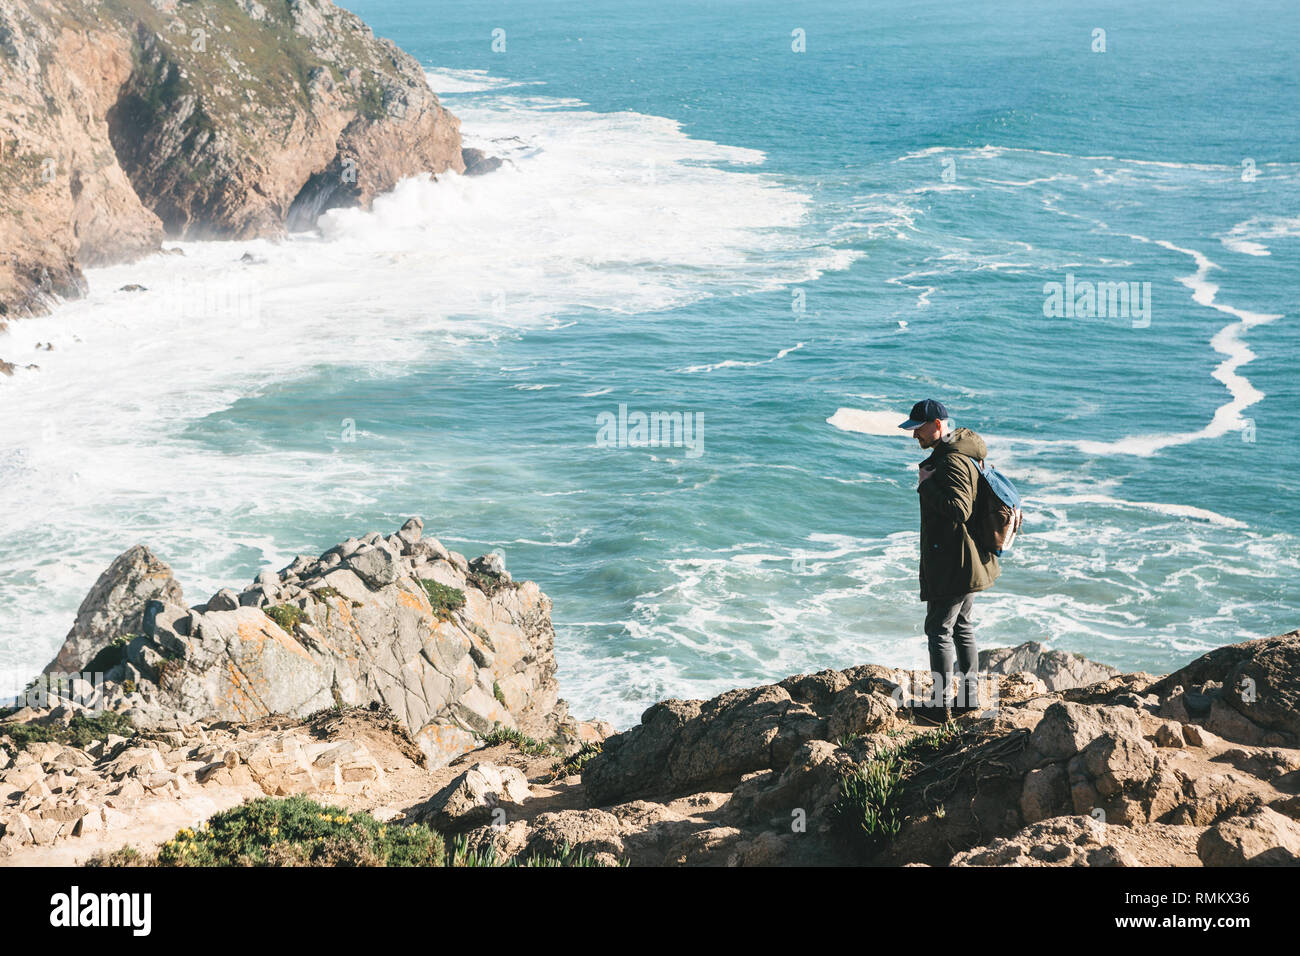 A man tourist with a backpack stands in solitude at Cape Roca in Portugal. - Stock Image